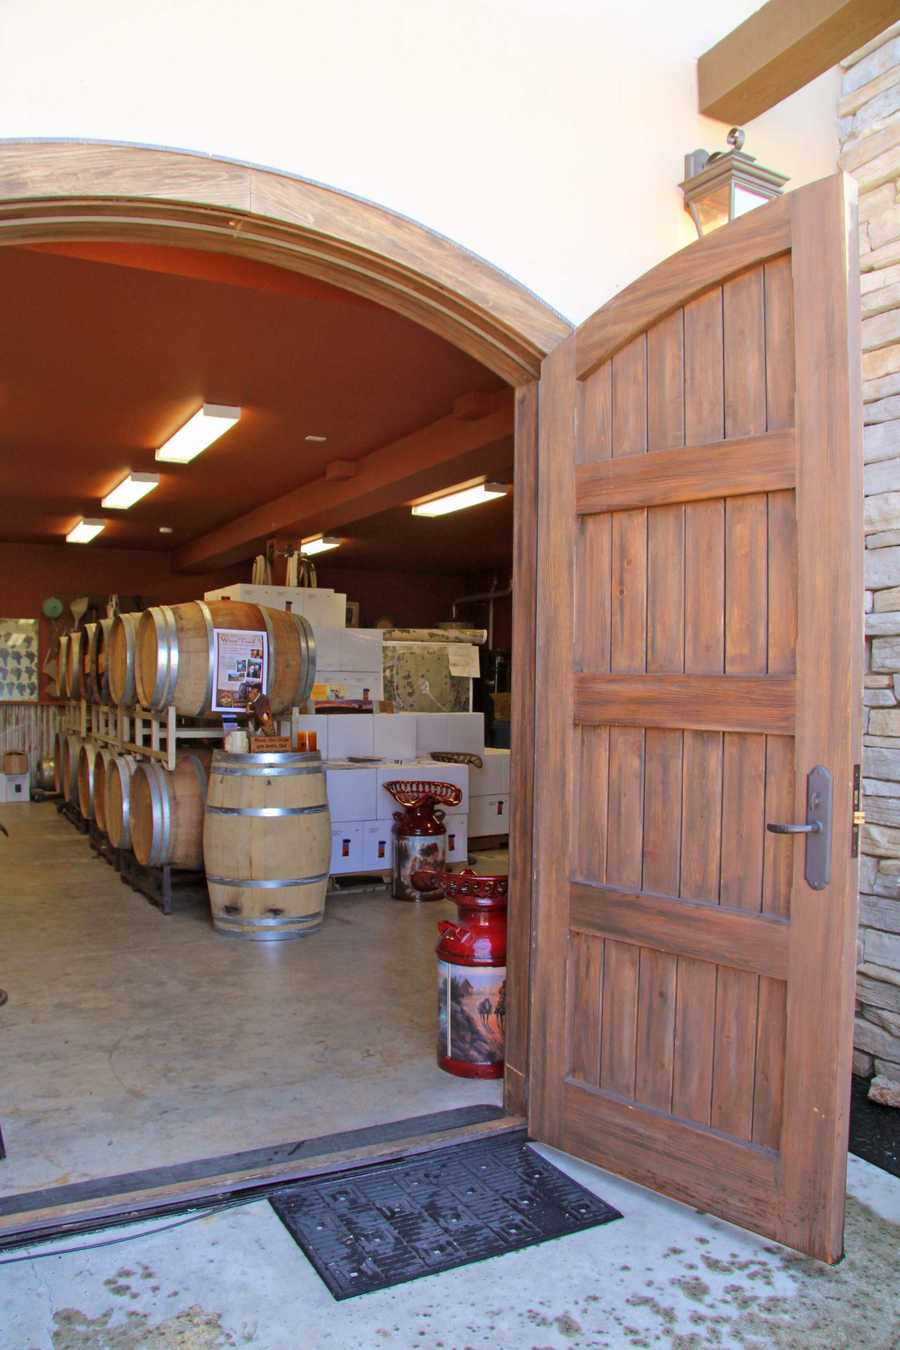 Here's a look inside the winery.